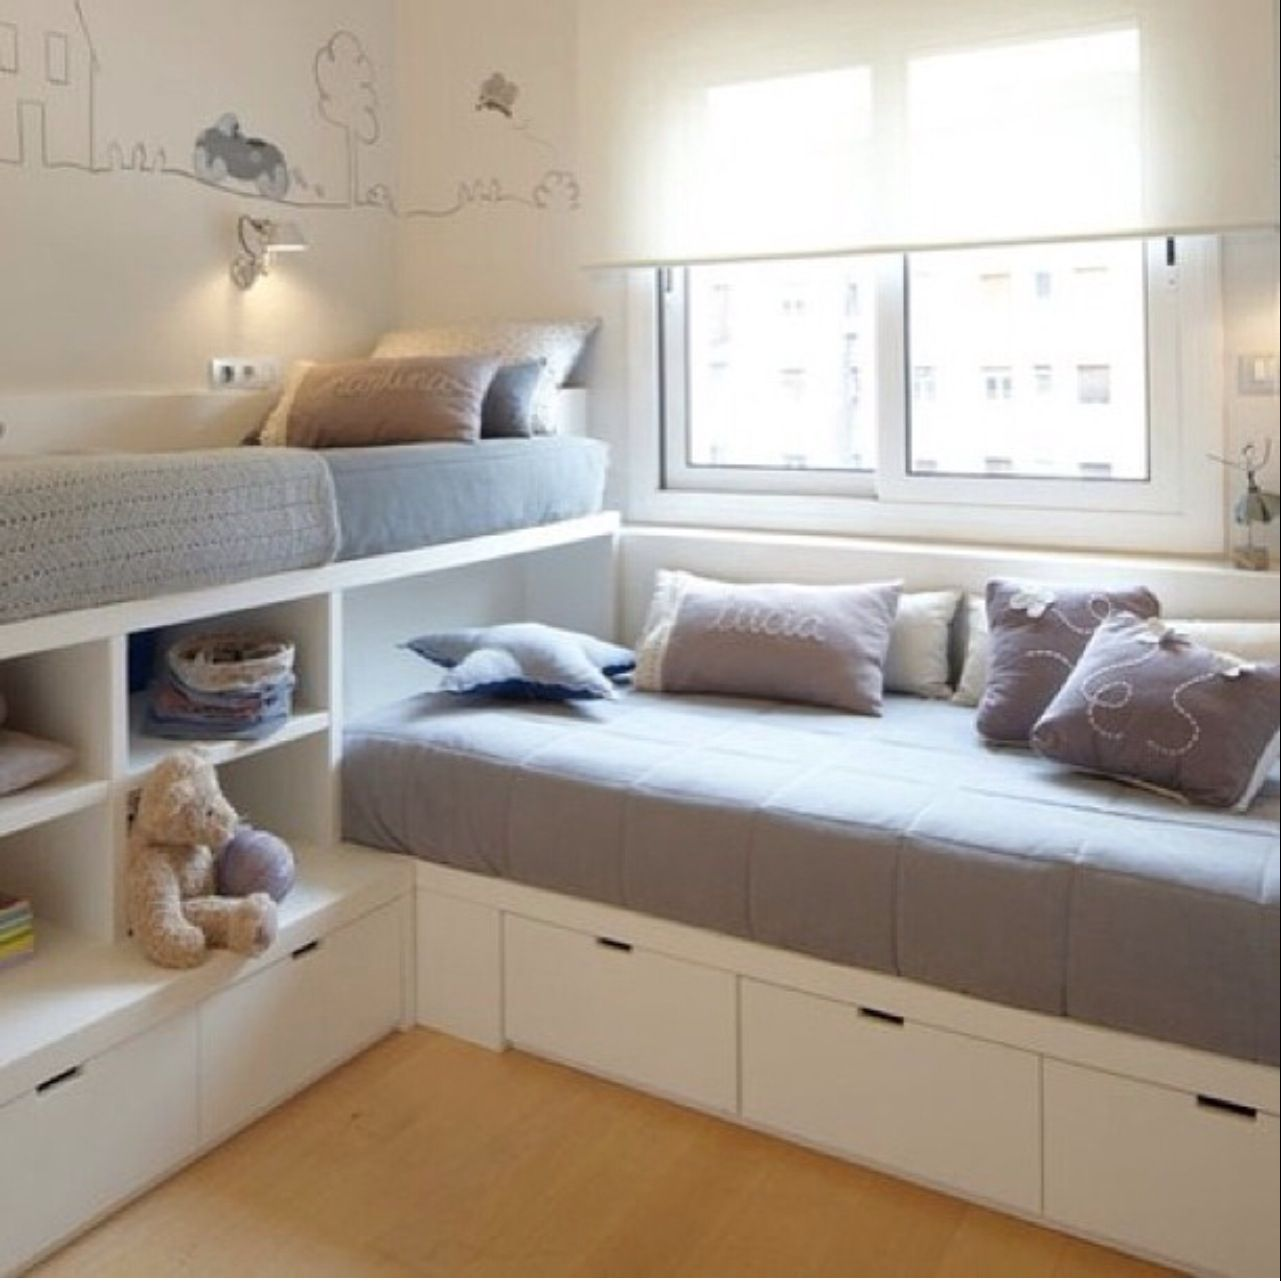 Little Boy Twin Bed Quarto Para Dois Boys Pinterest Kids Rooms Bedrooms